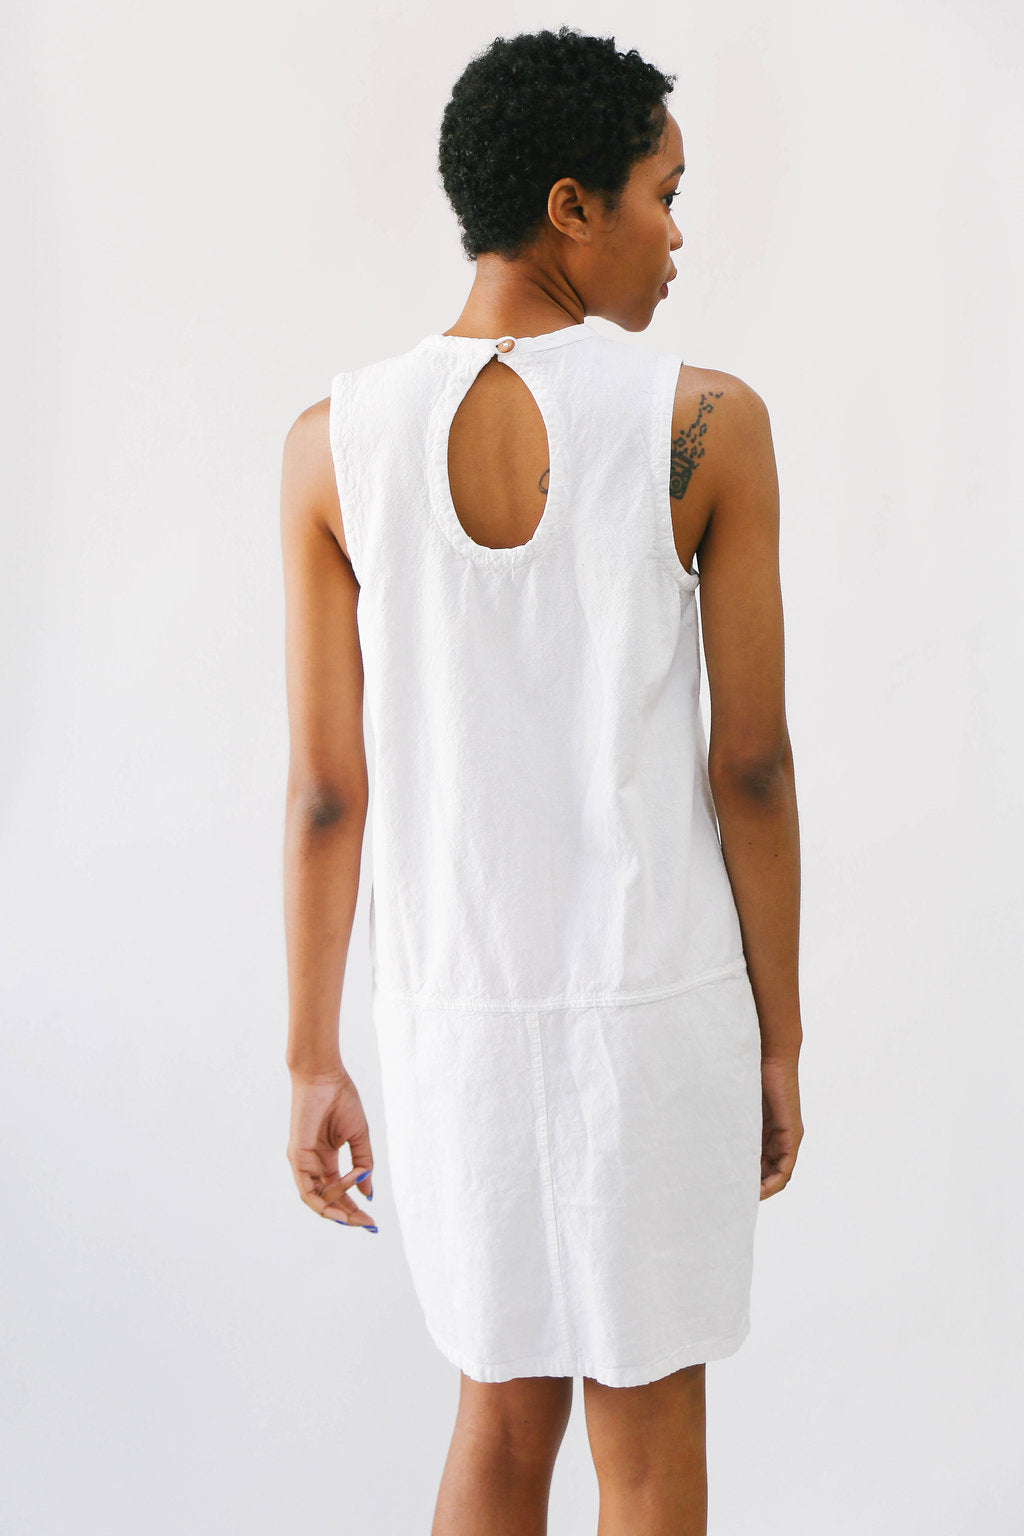 Simply Cotton- Sin Manga Dress